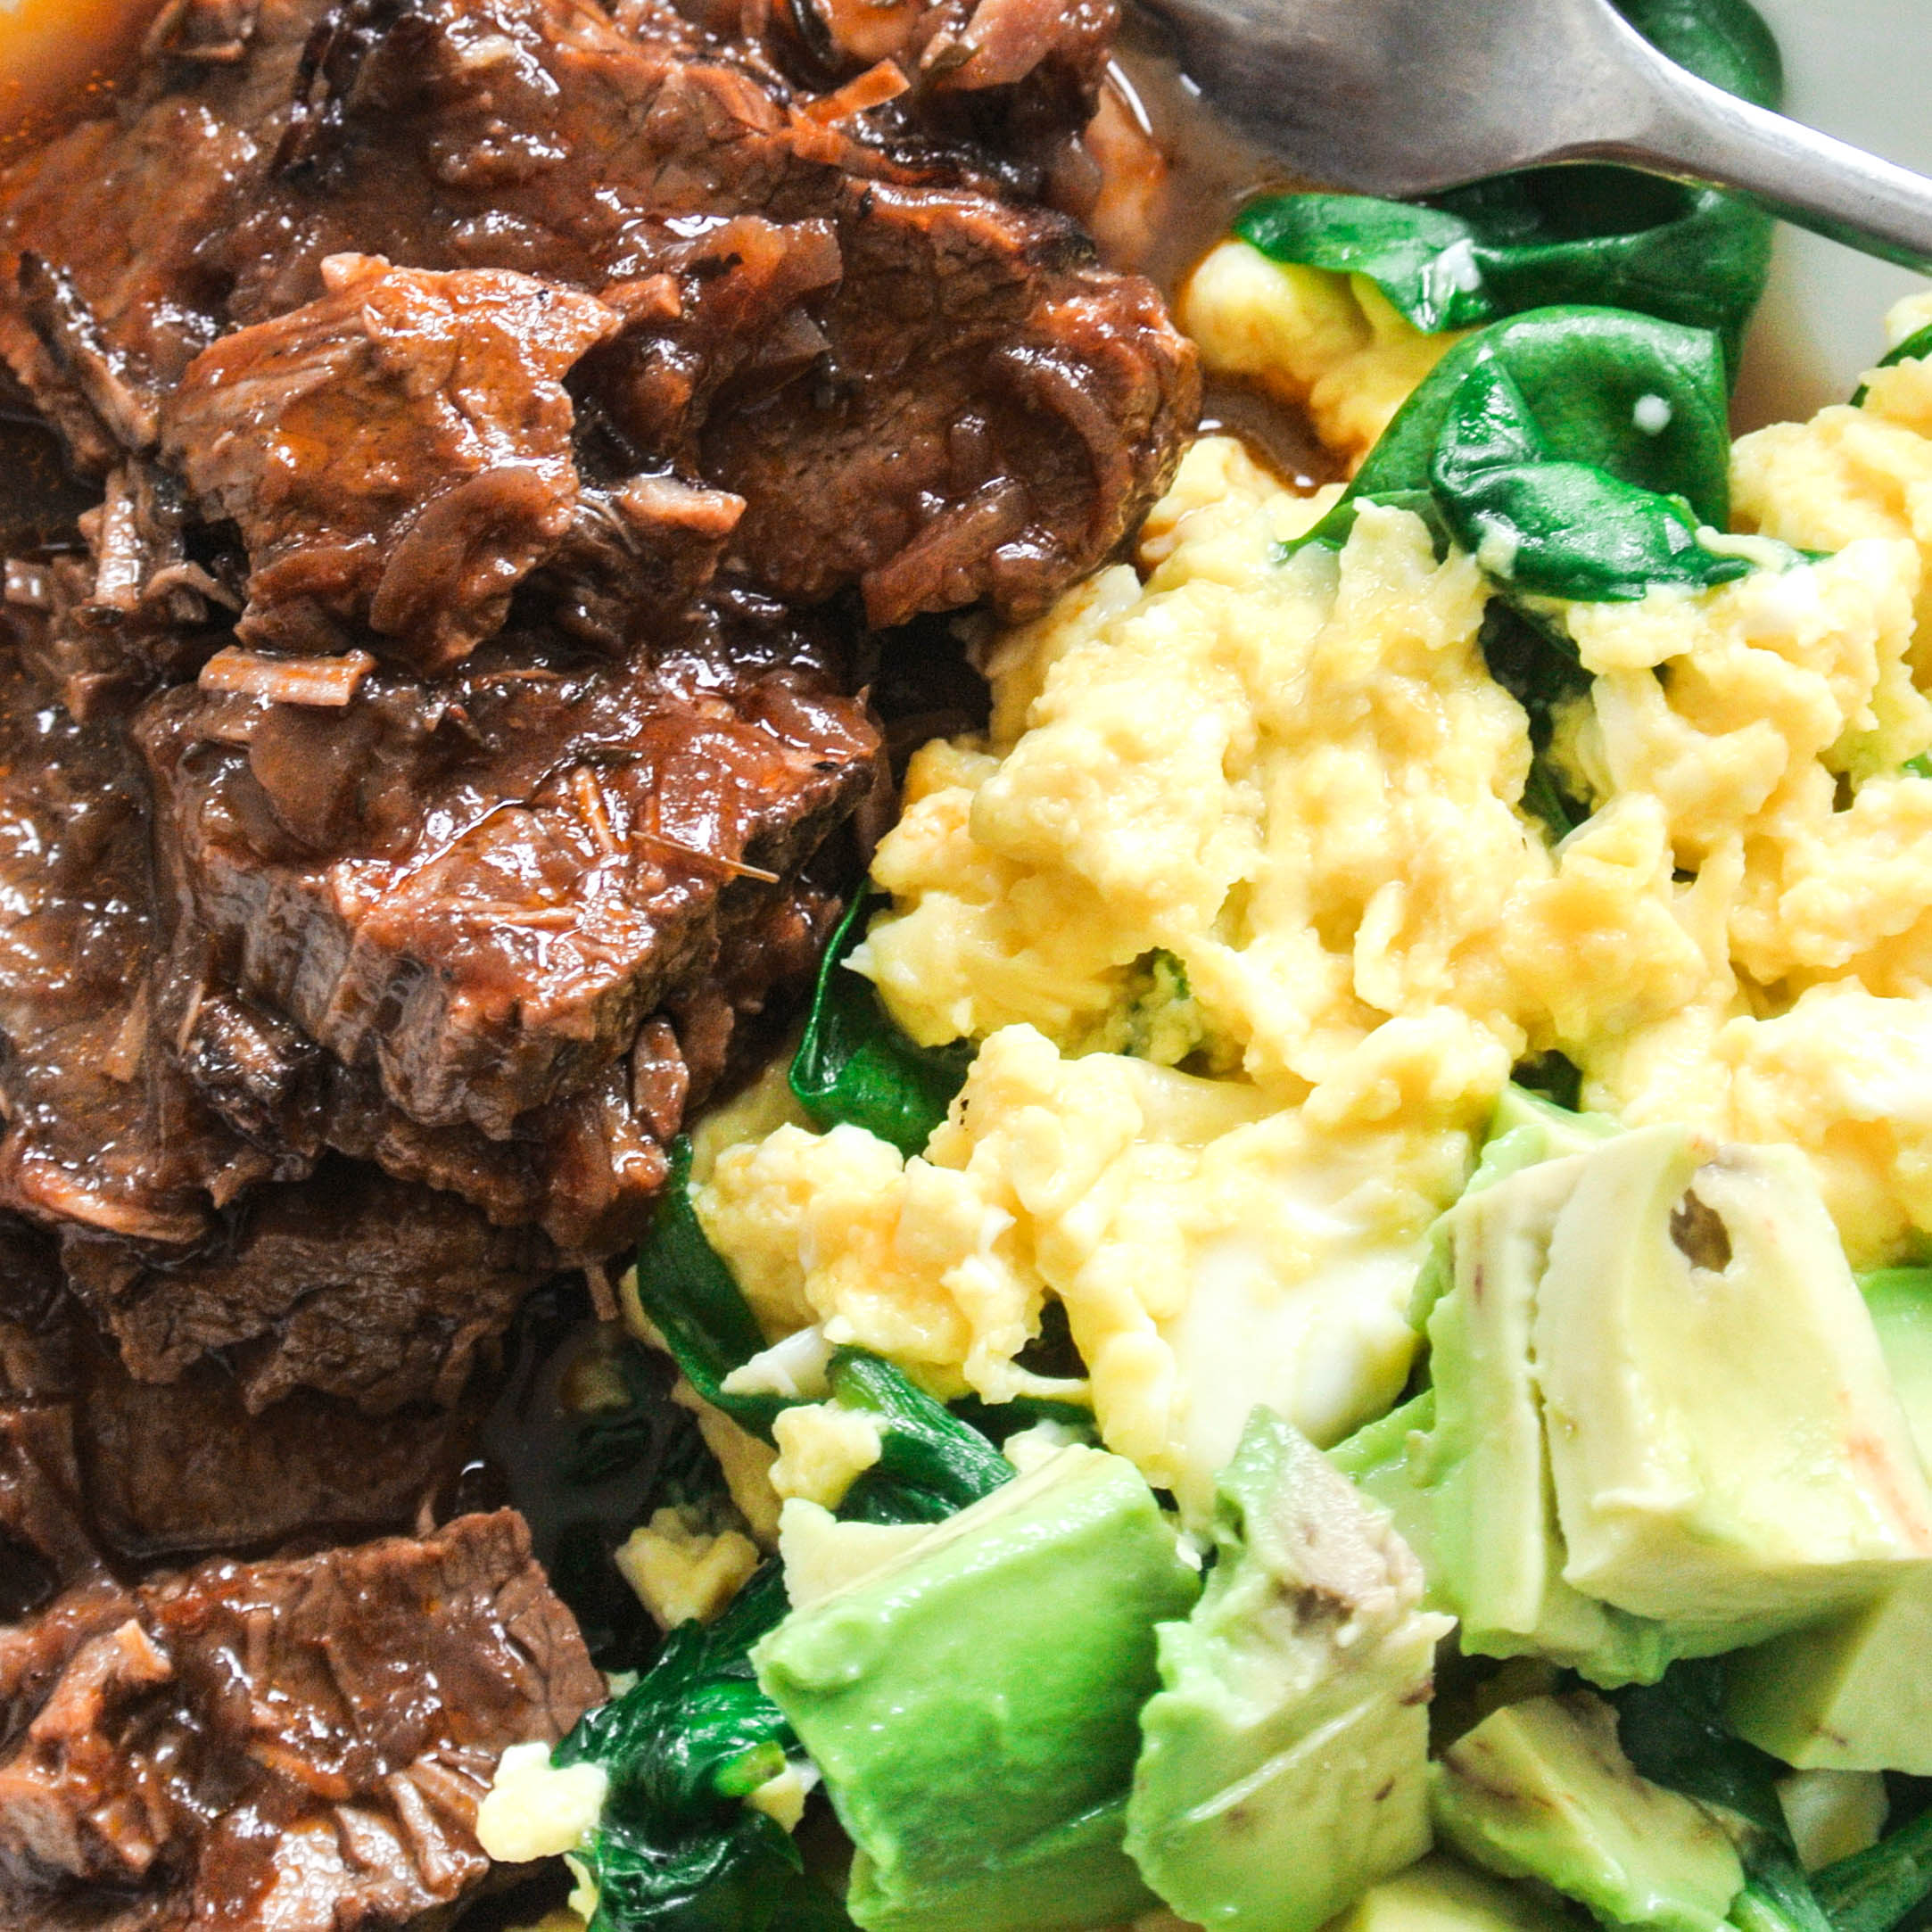 cabernet braised brisket with garlic print this brisket is cooked in ...